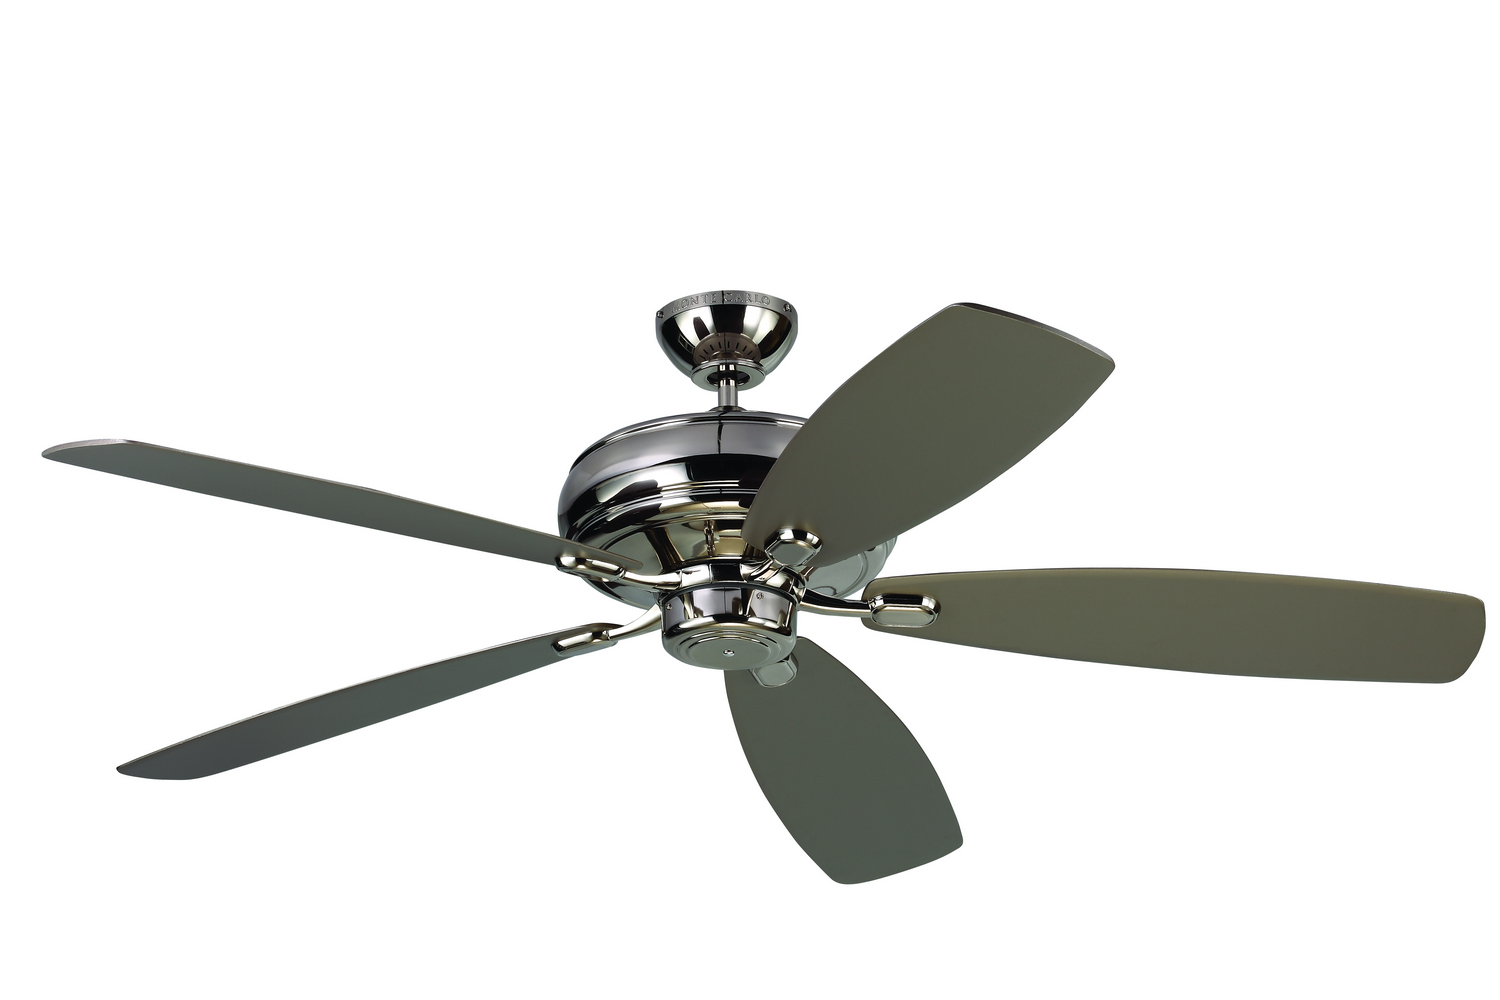 60 inch Ceiling Fan from the Embassy Max collection by Monte Carlo 5EM60PN